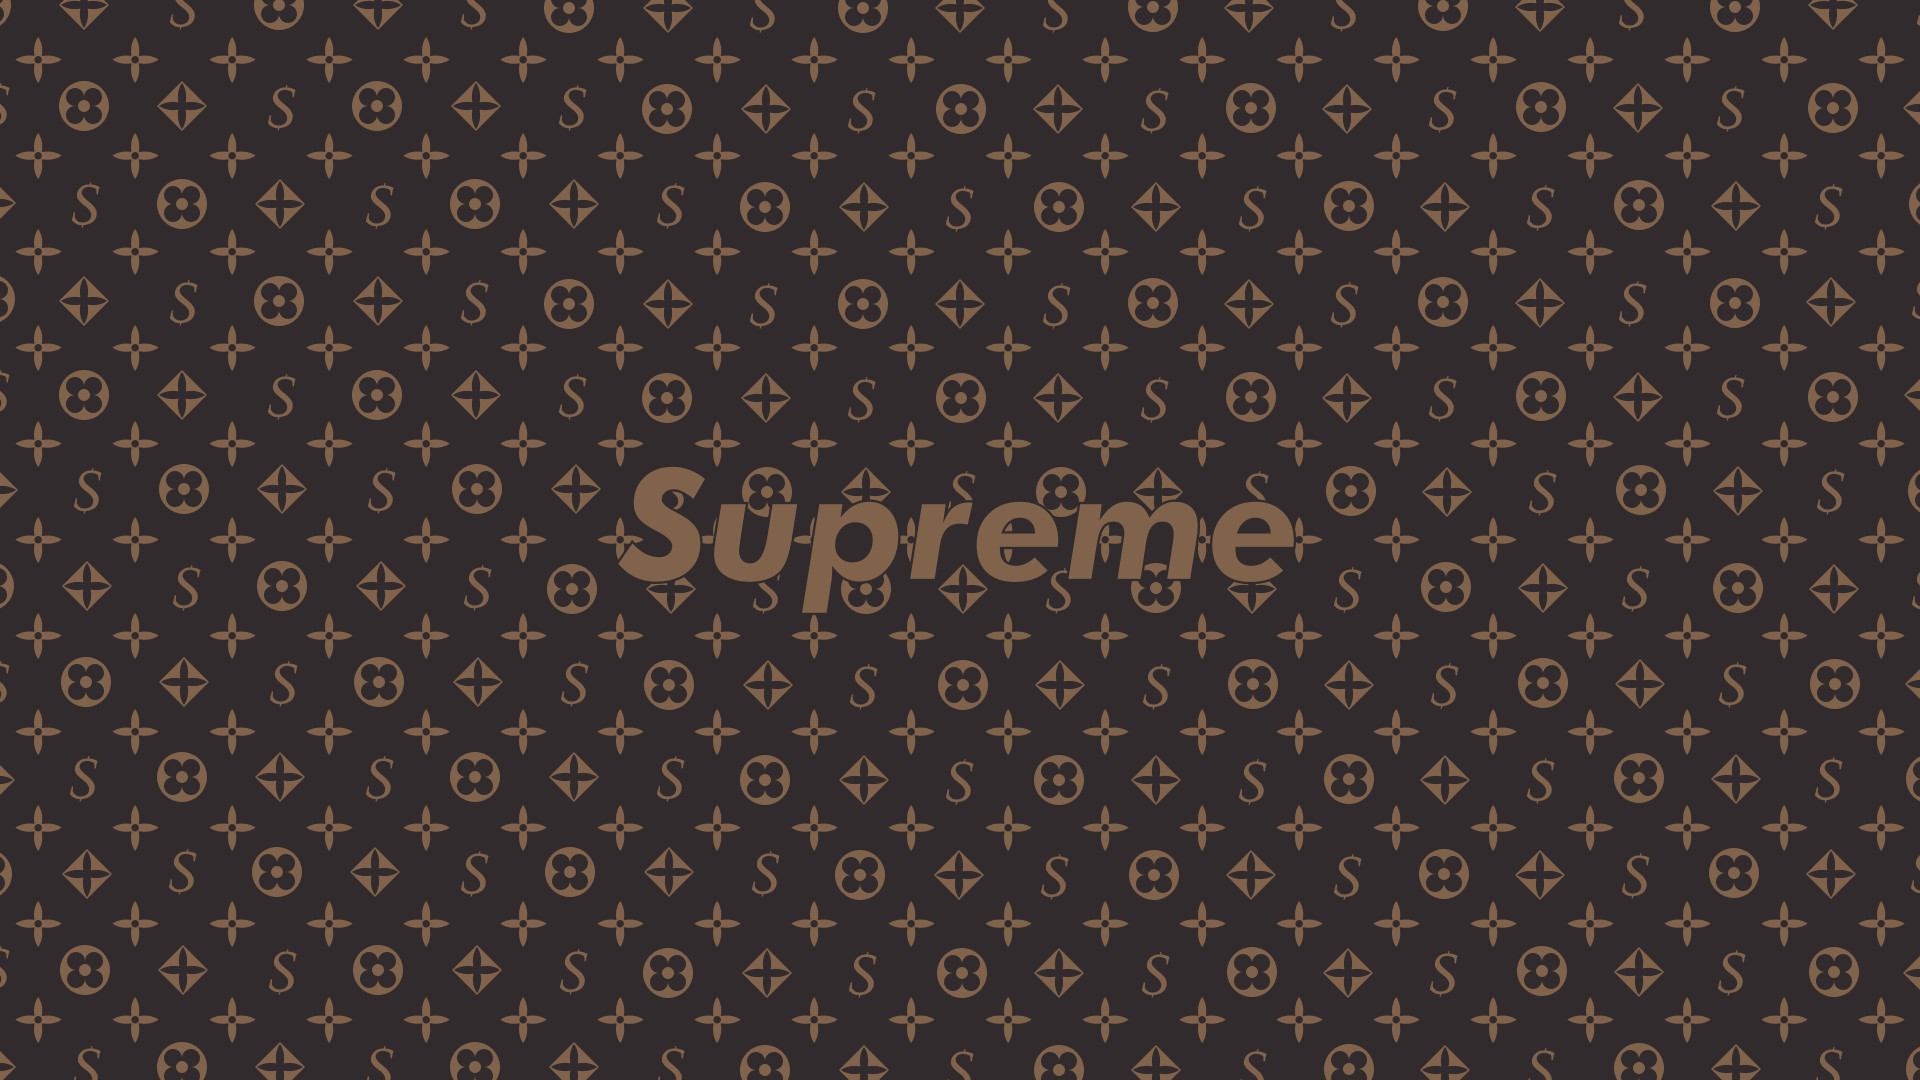 Supreme wallpaper 73 images for Fond ecran supreme